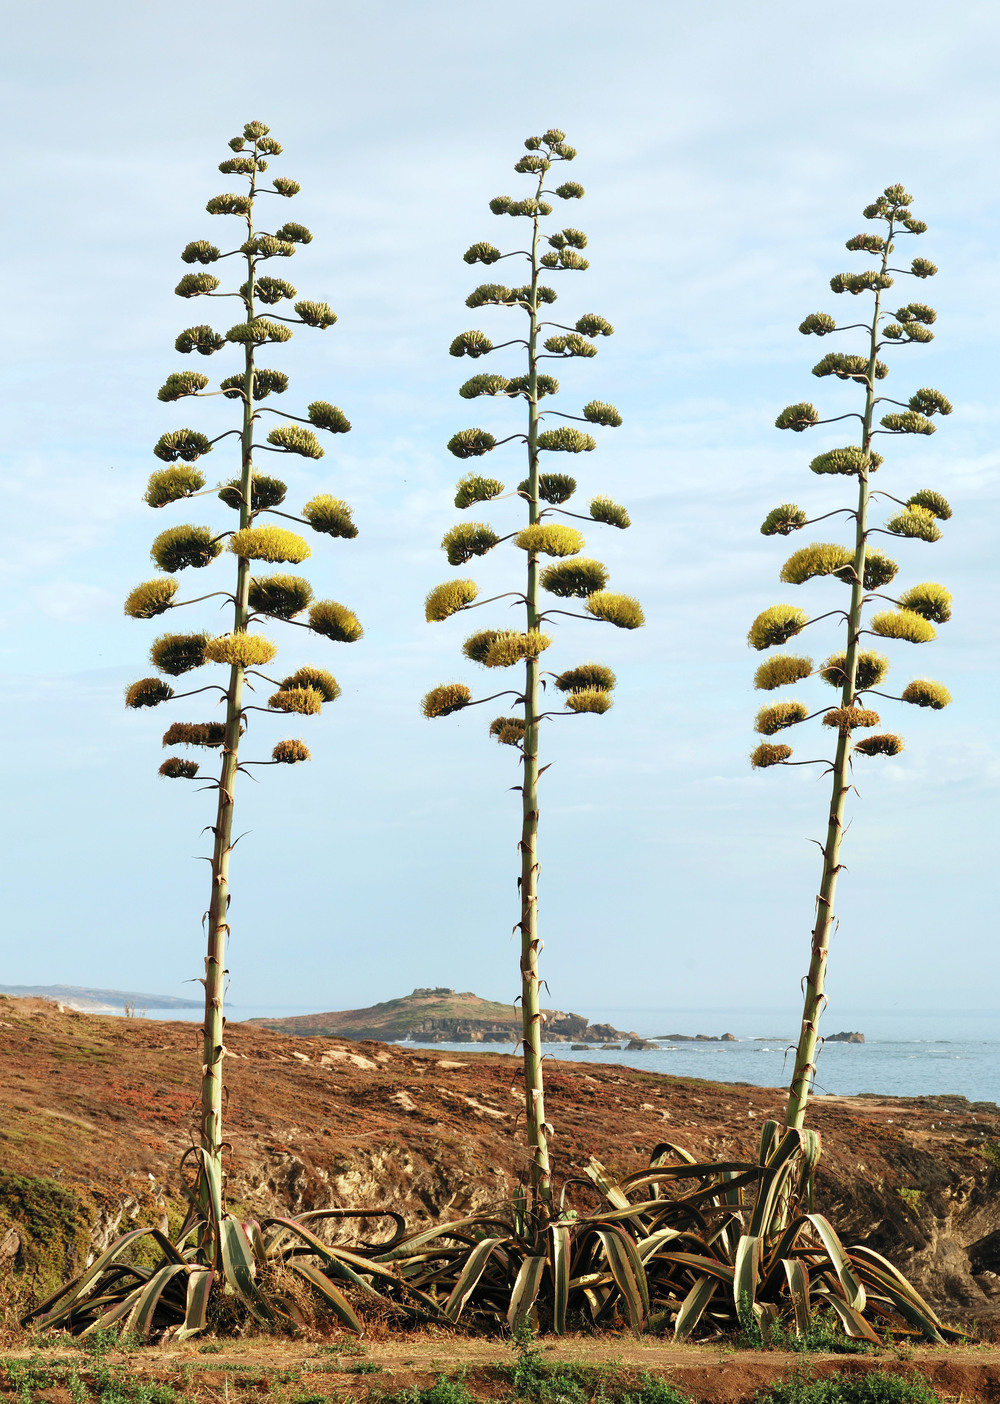 American Agave Plants